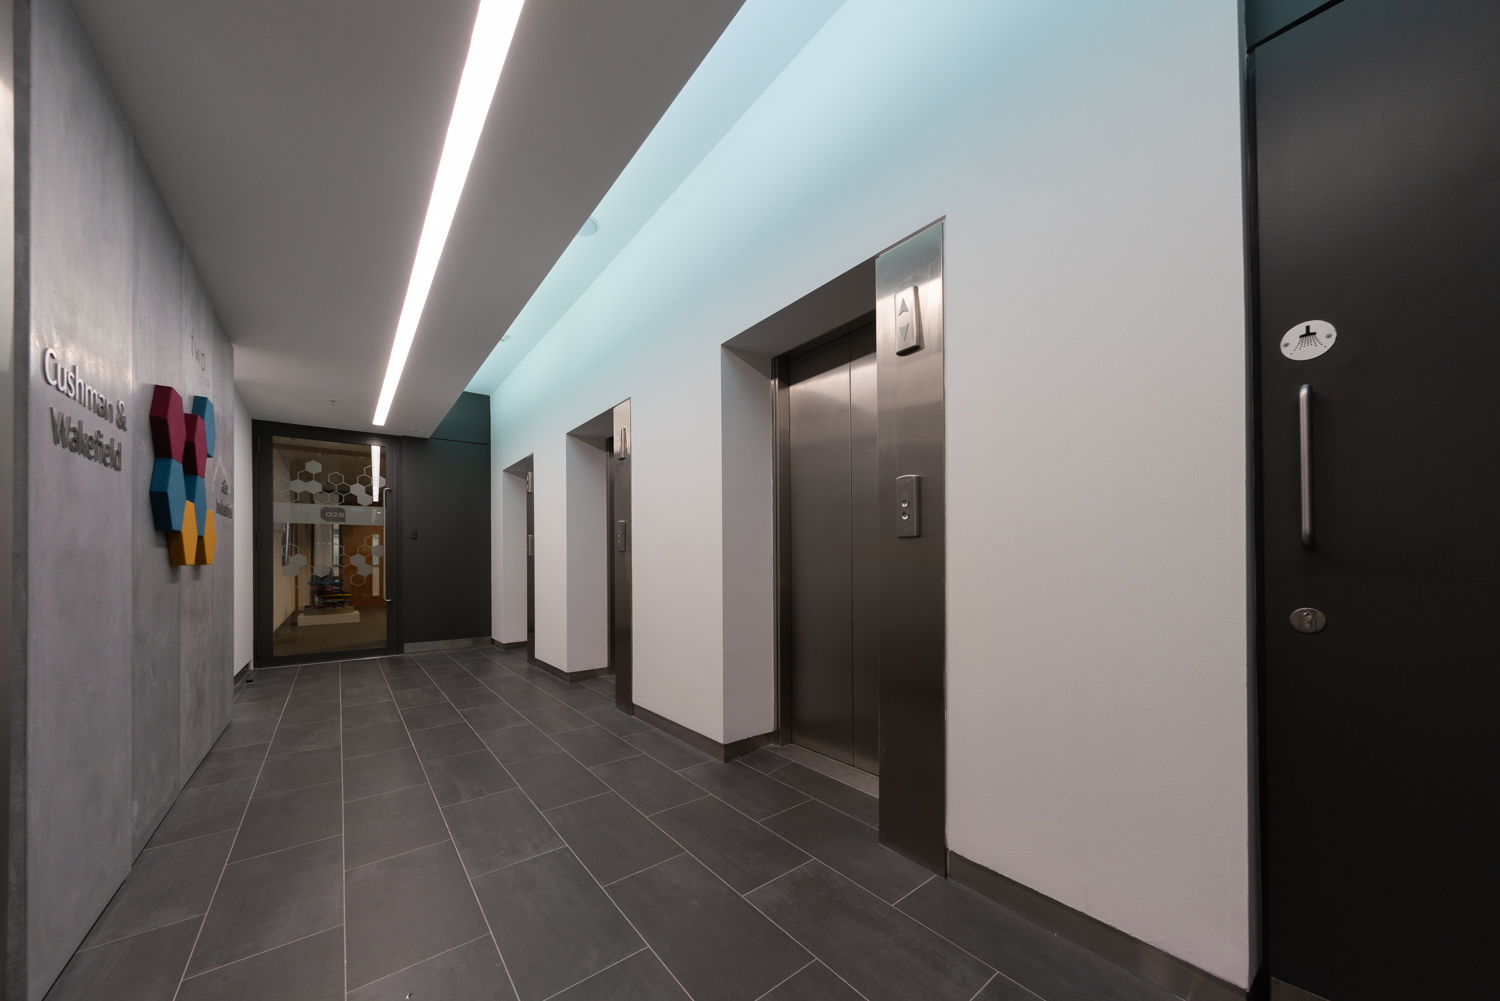 Marsden Street, Manchester – Completed Project